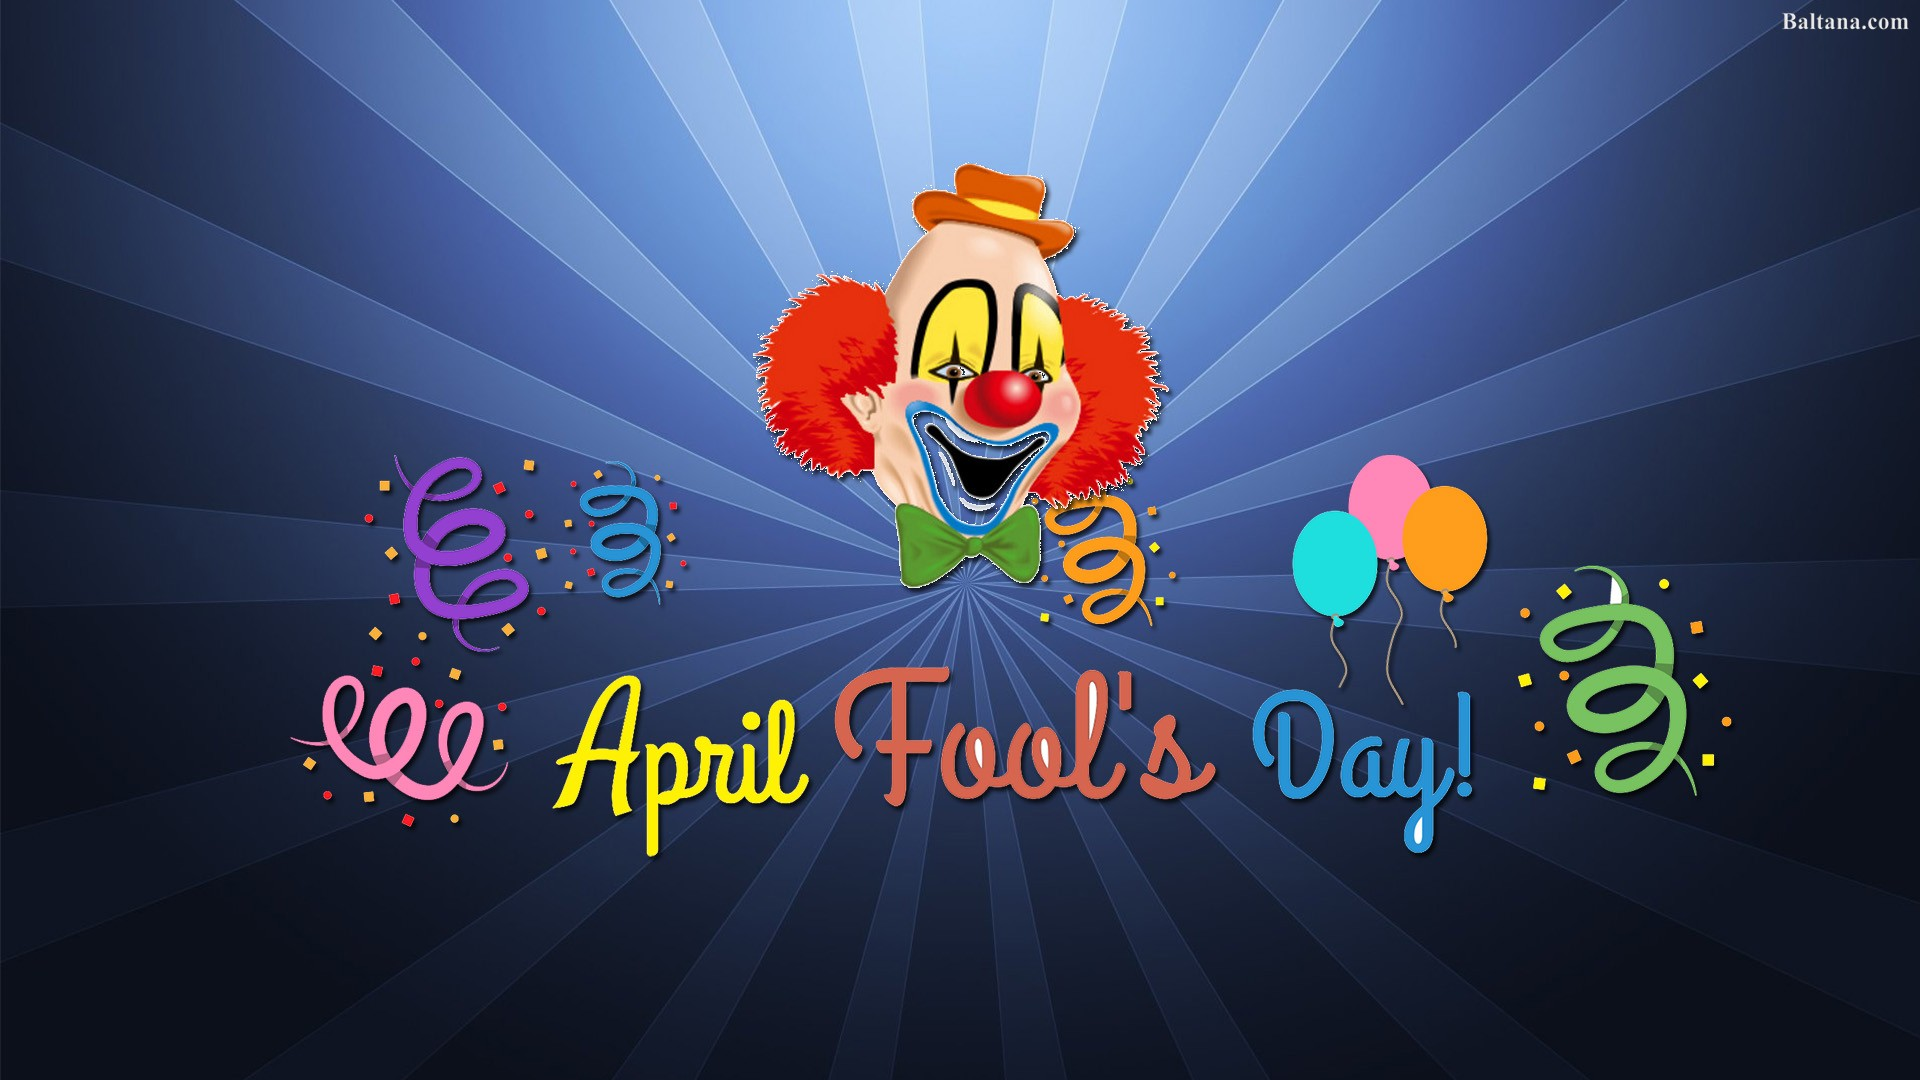 April Fools Day High Definition Wallpaper - Graphic Design - HD Wallpaper